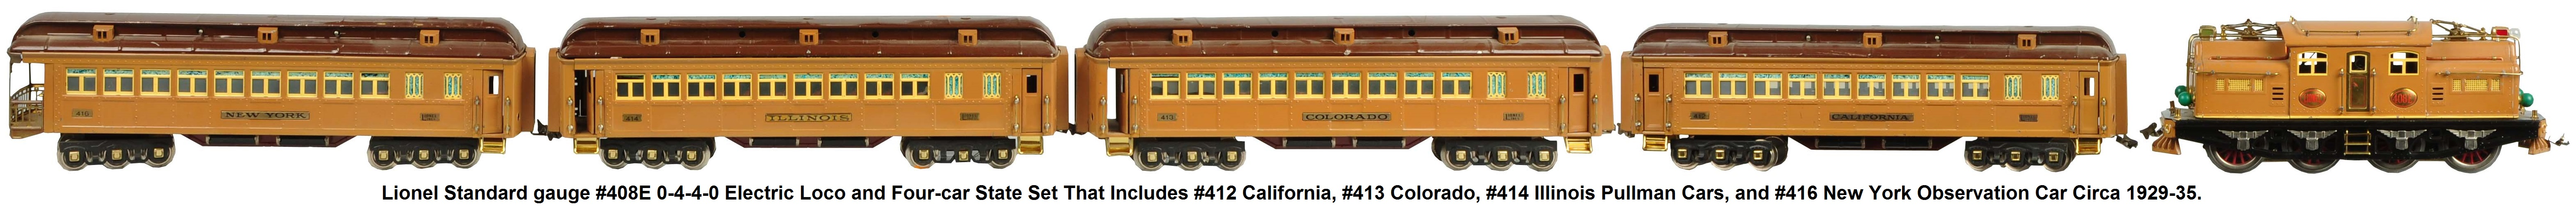 Lionel Standard gauge State Set from 1929-35 with #408E loco and four-car set that includes Illinois, Colorado, New York and California cars.